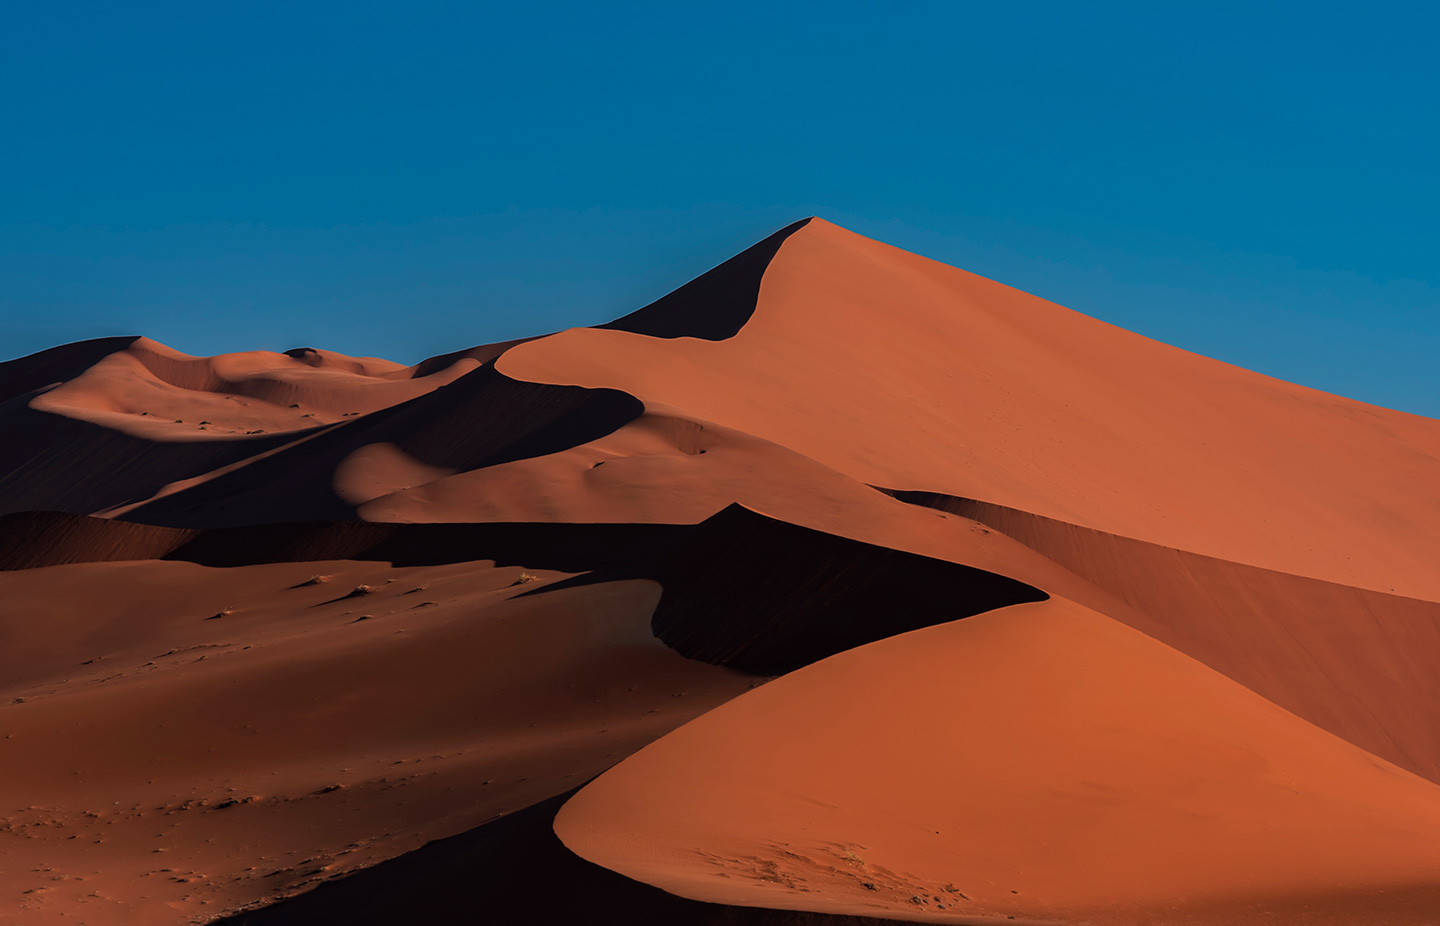 Namibia Photo Workshop with Dany Eid, Daniel Cheong & Elia Locardi